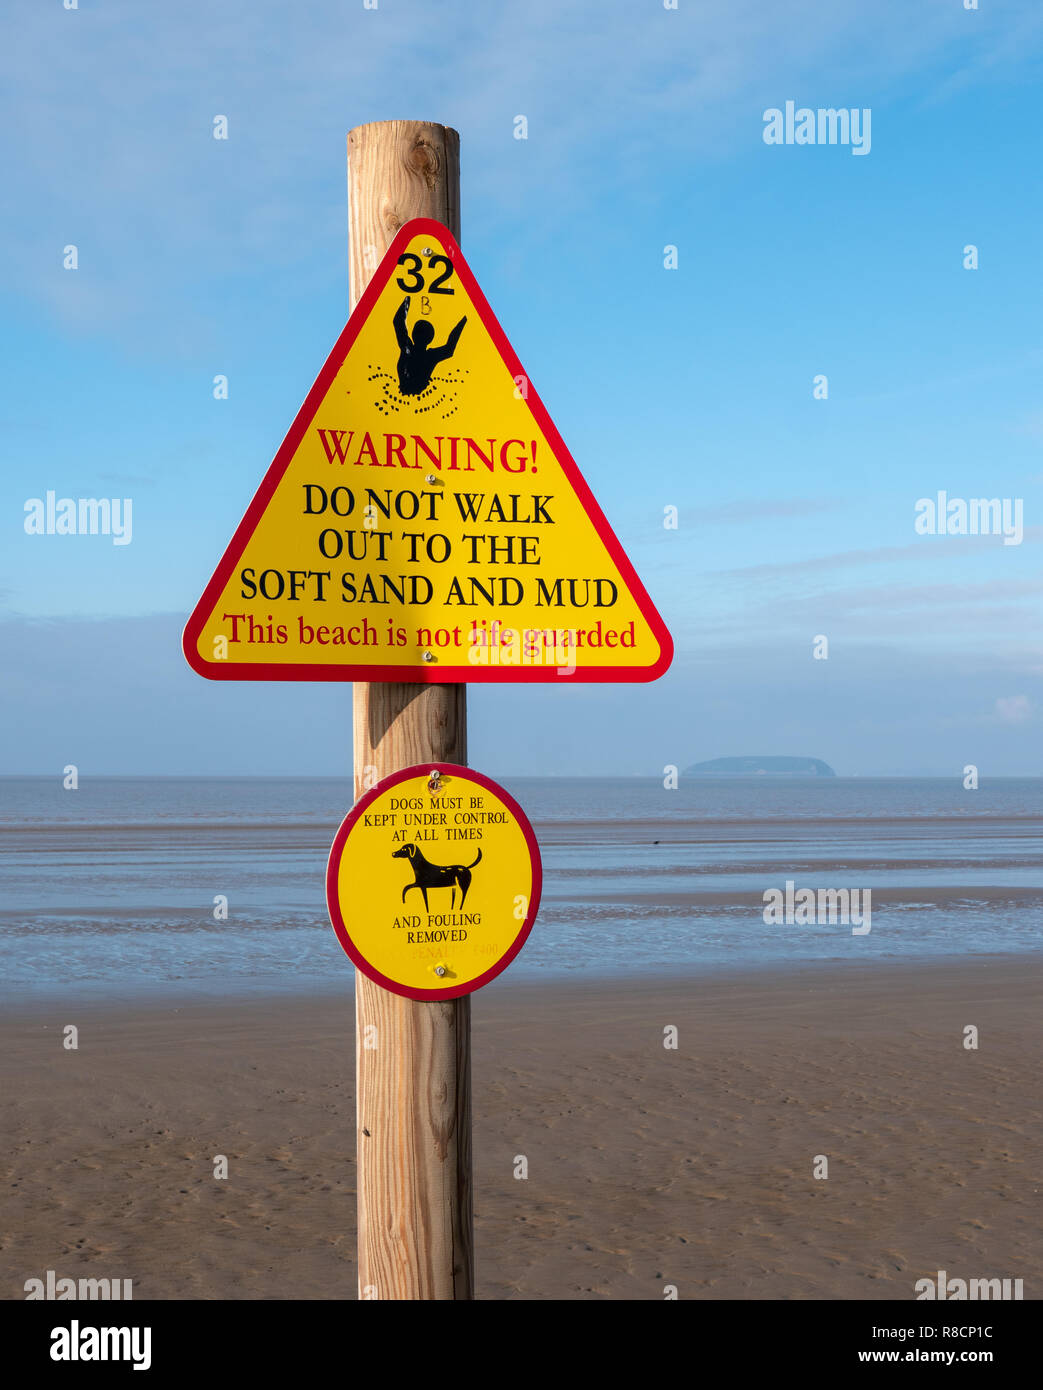 Yellow hazard triangle on Berrow Beach in Somerset UK warning about the treacherous soft mud at low tide and anti fouling message for dog owners - Stock Image